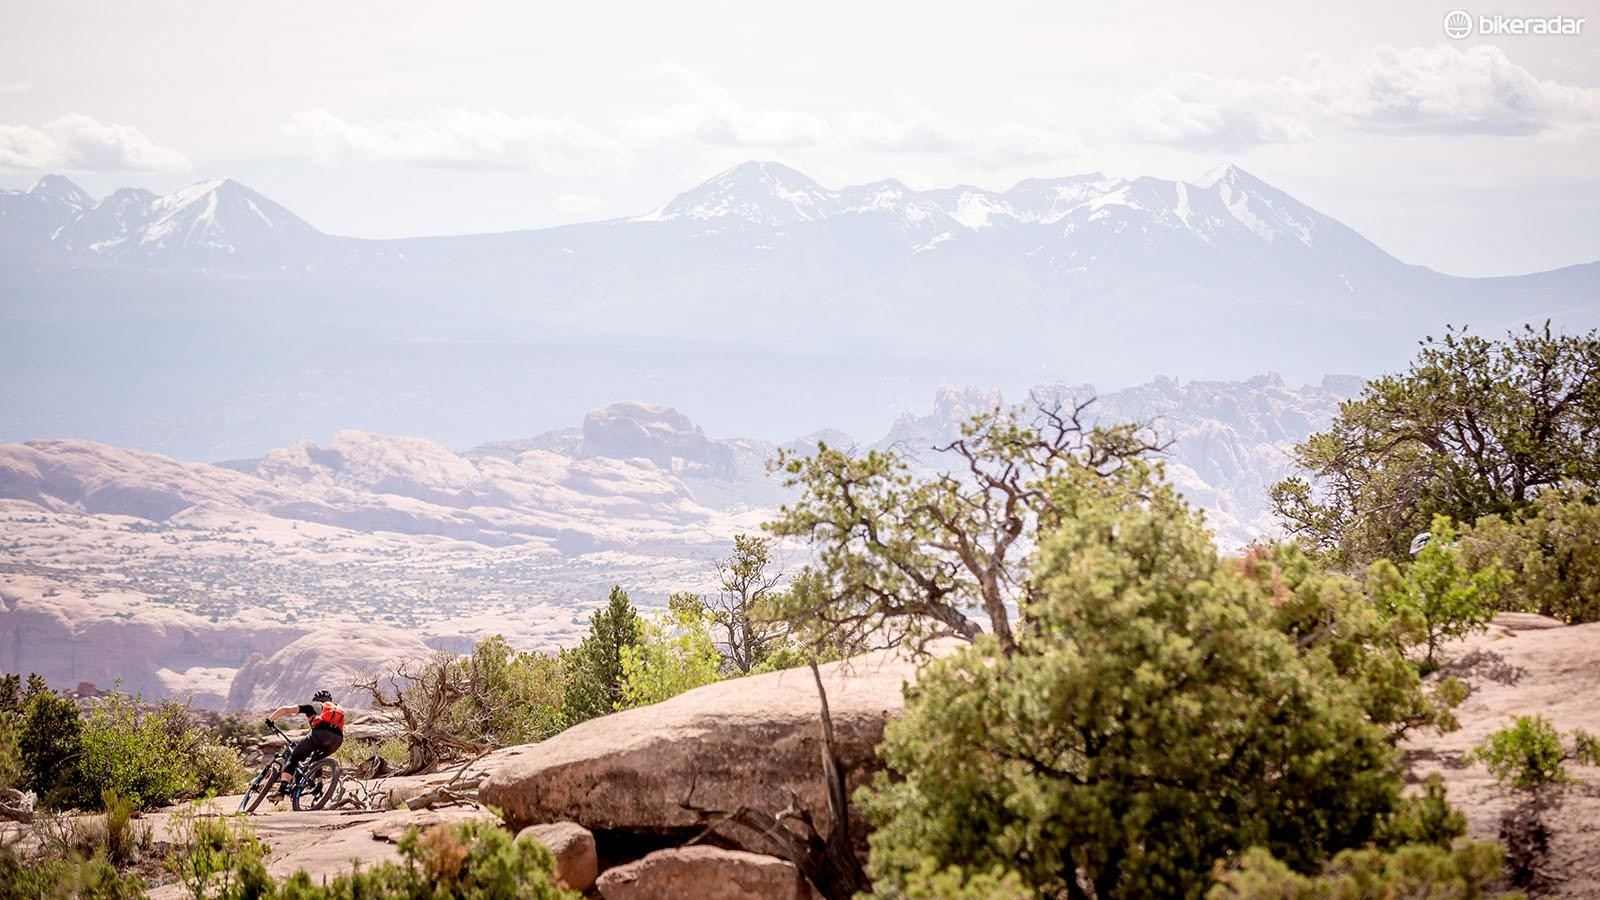 It's hard to take in Moab's stunning views while dodging rocks...